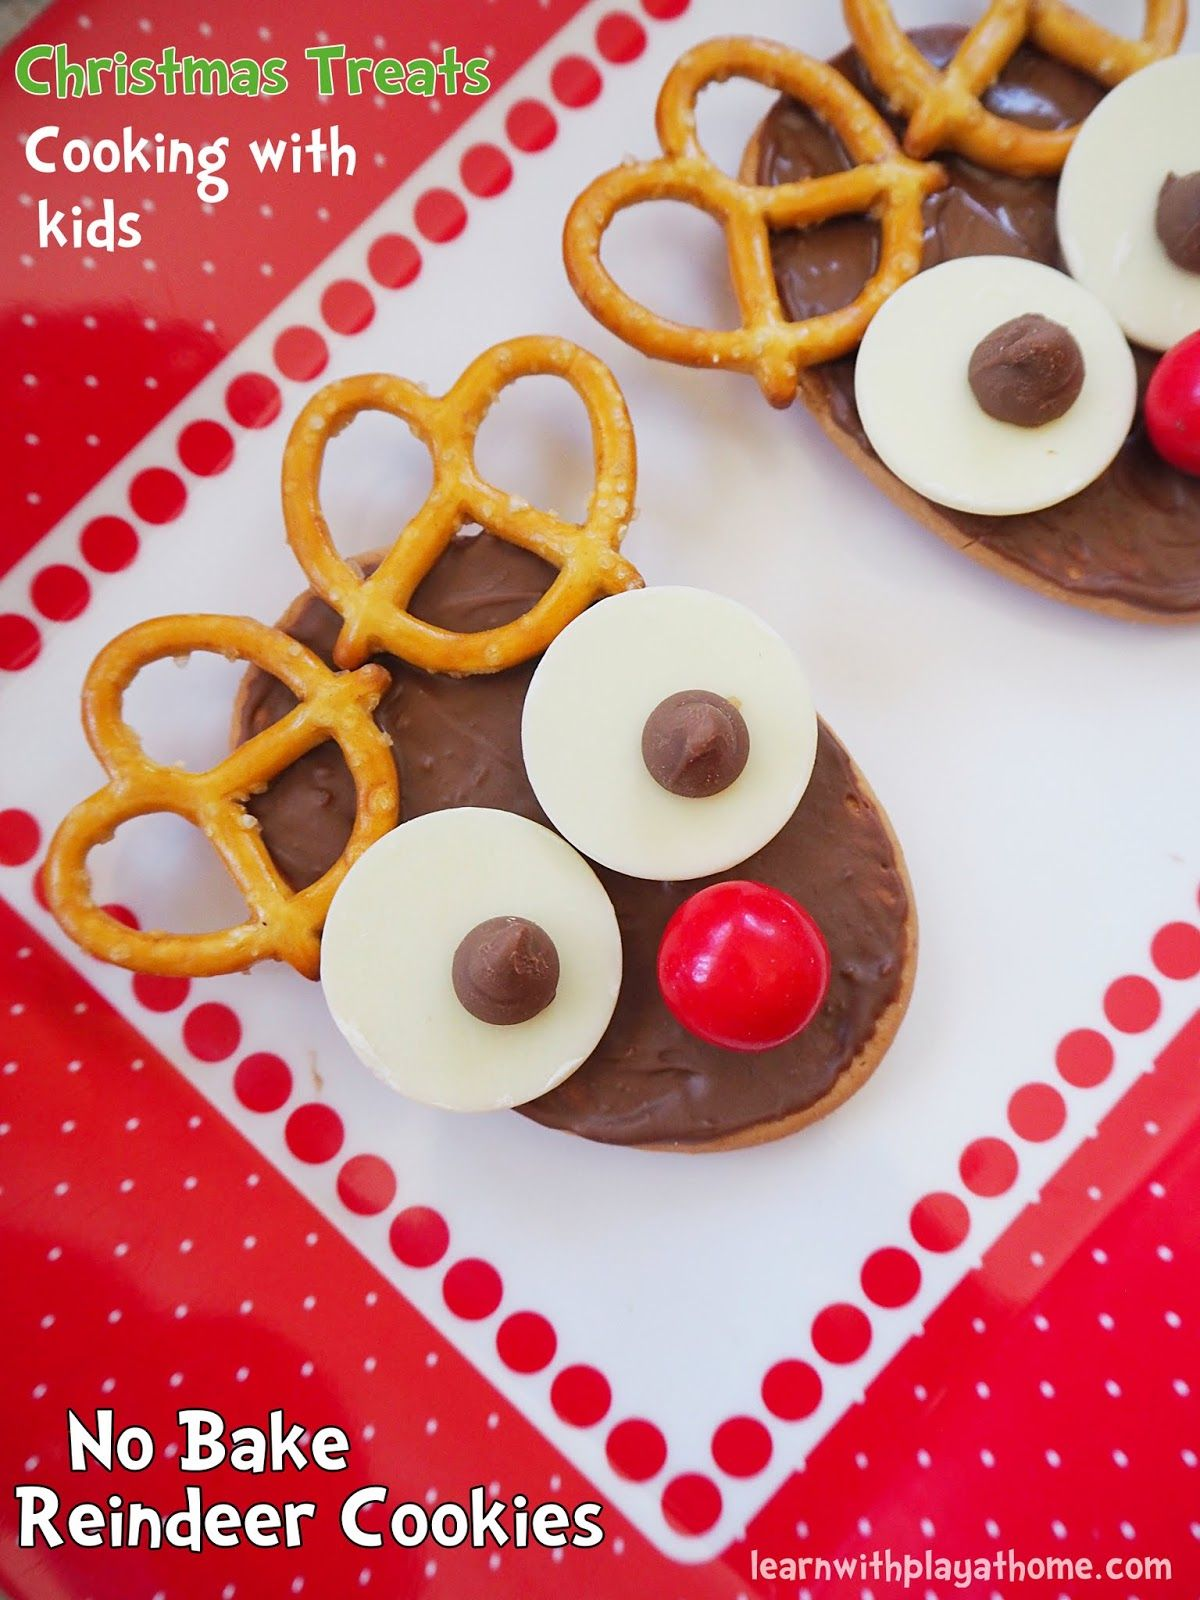 No Bake Reindeer Cookies Fun Christmas Food Idea